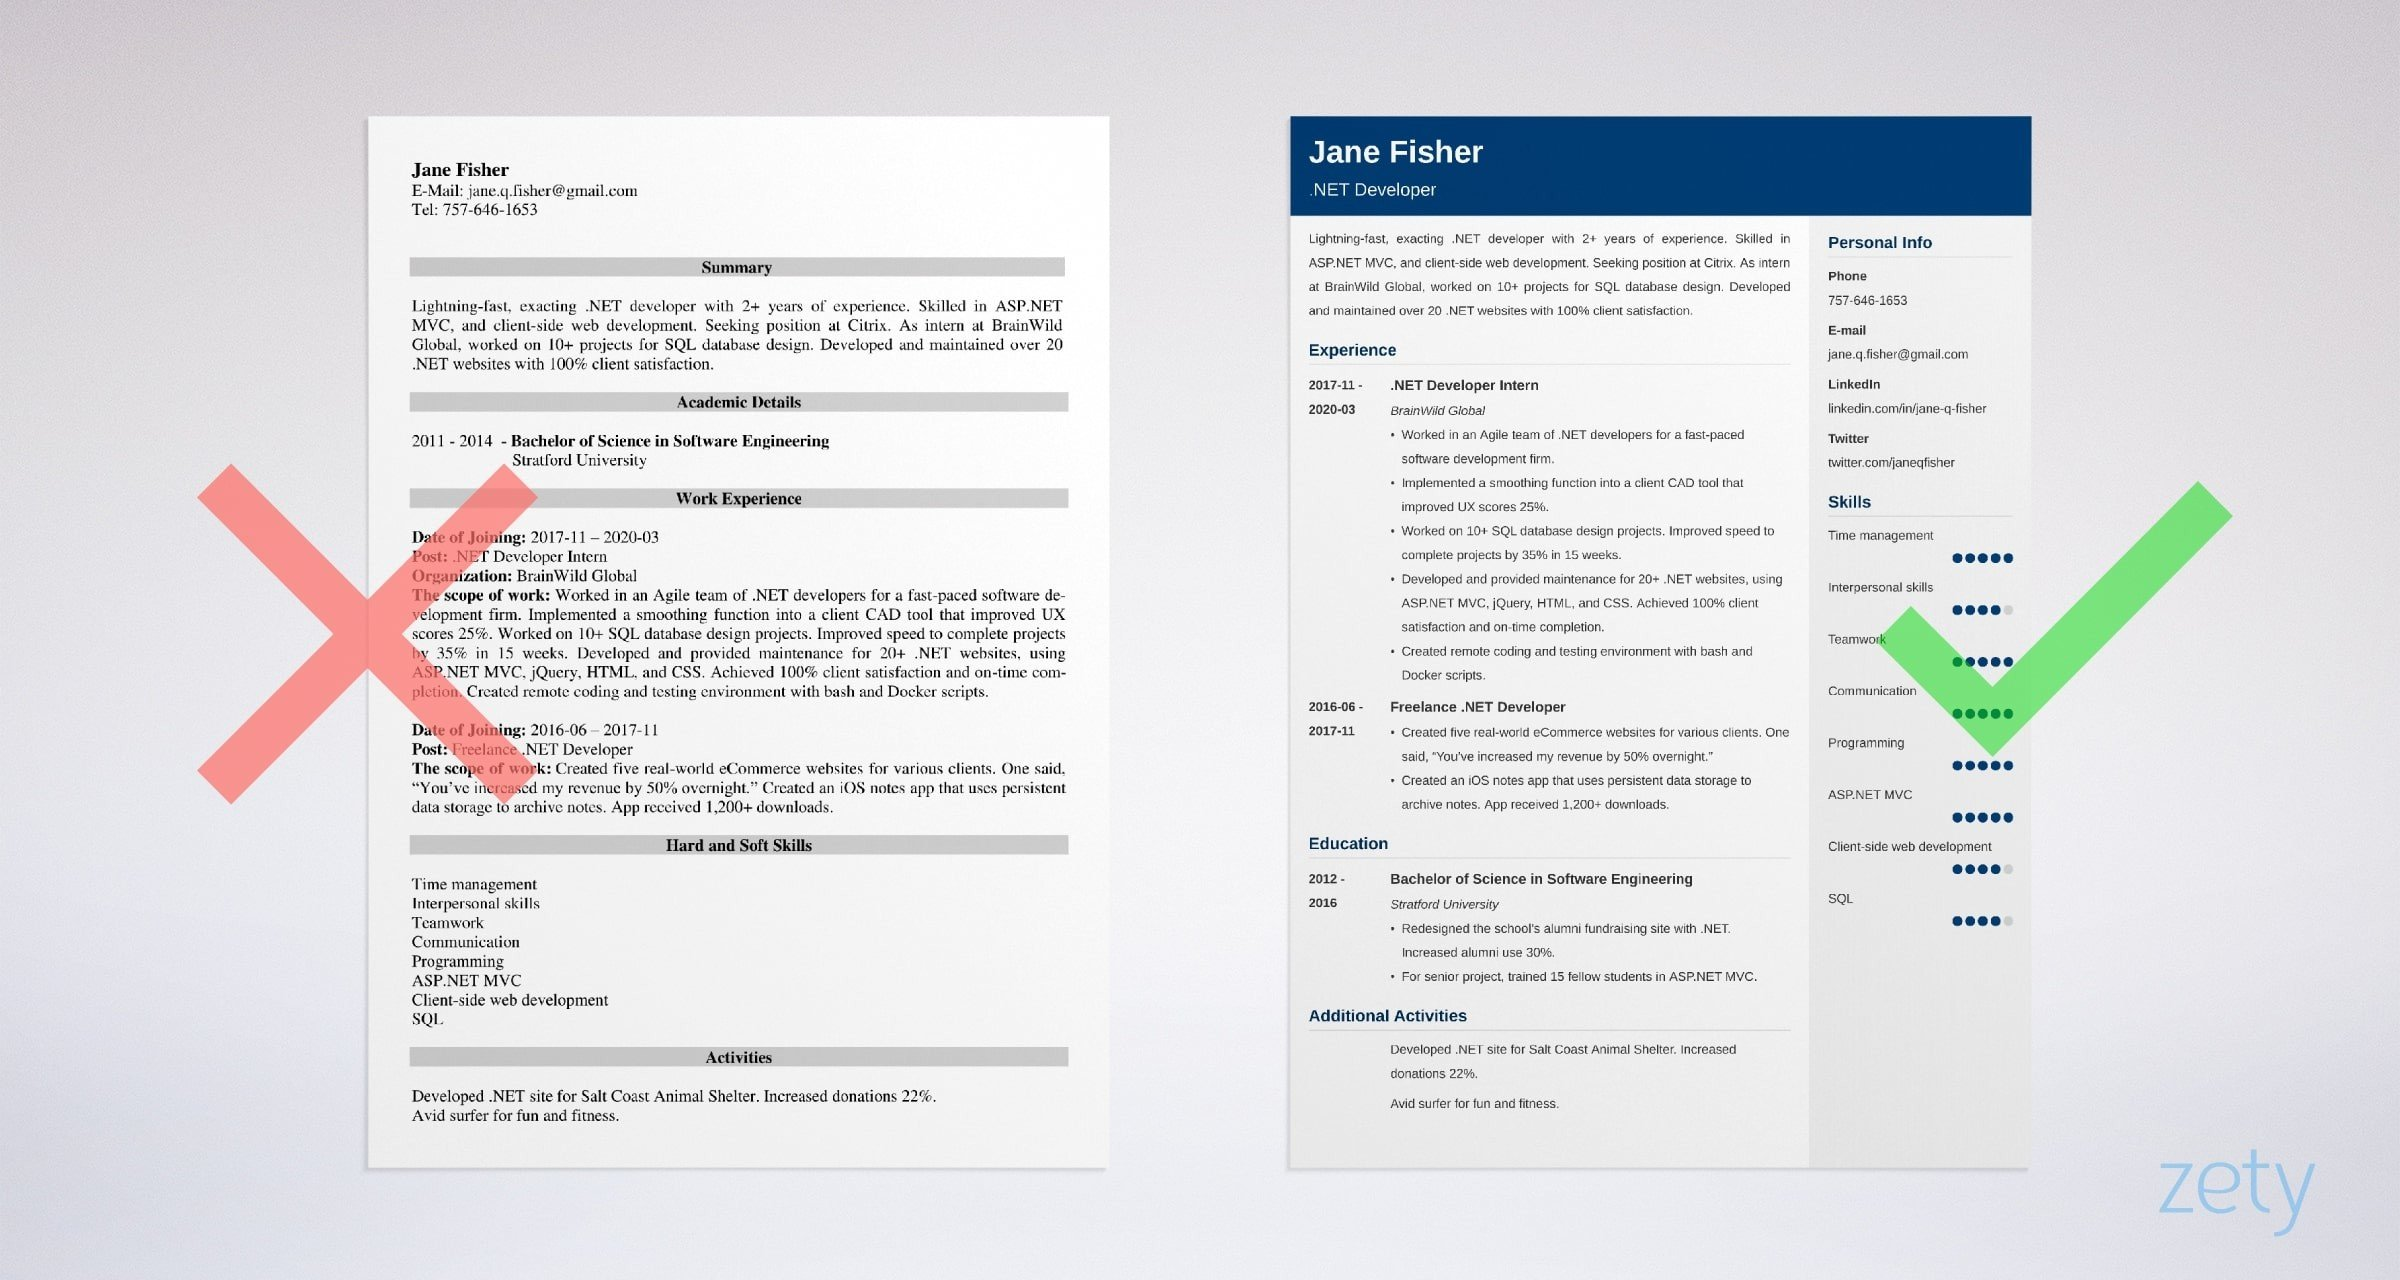 Net Developer Resume Sample And Full Writing Guide 20 Tips